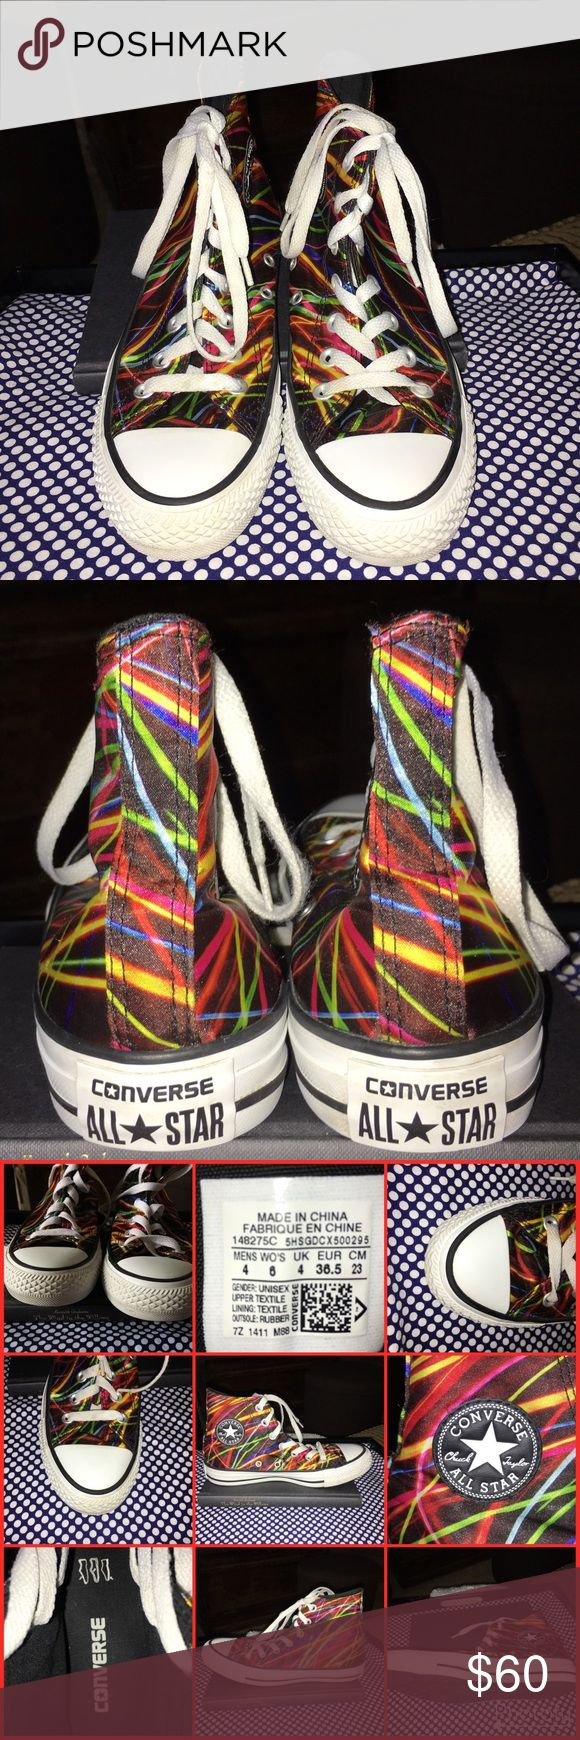 RARE Neon Converse Light Photography Graphics RARE LIMITED EDITION Chuck Taylor High Top Converse - Phosphorescent Neon Light Trail Photography Graphics. Made of satin canvas textile.   Super Unique, Super Cool. Maybe worn once or twice.   Please feel free to ask questions and for more photos. Most photos taken with flash to capture details.   As always please double check and examine photos to determine condition for yourself.   ⚡️Ours is a non smoking home. Converse Shoes Sneakers